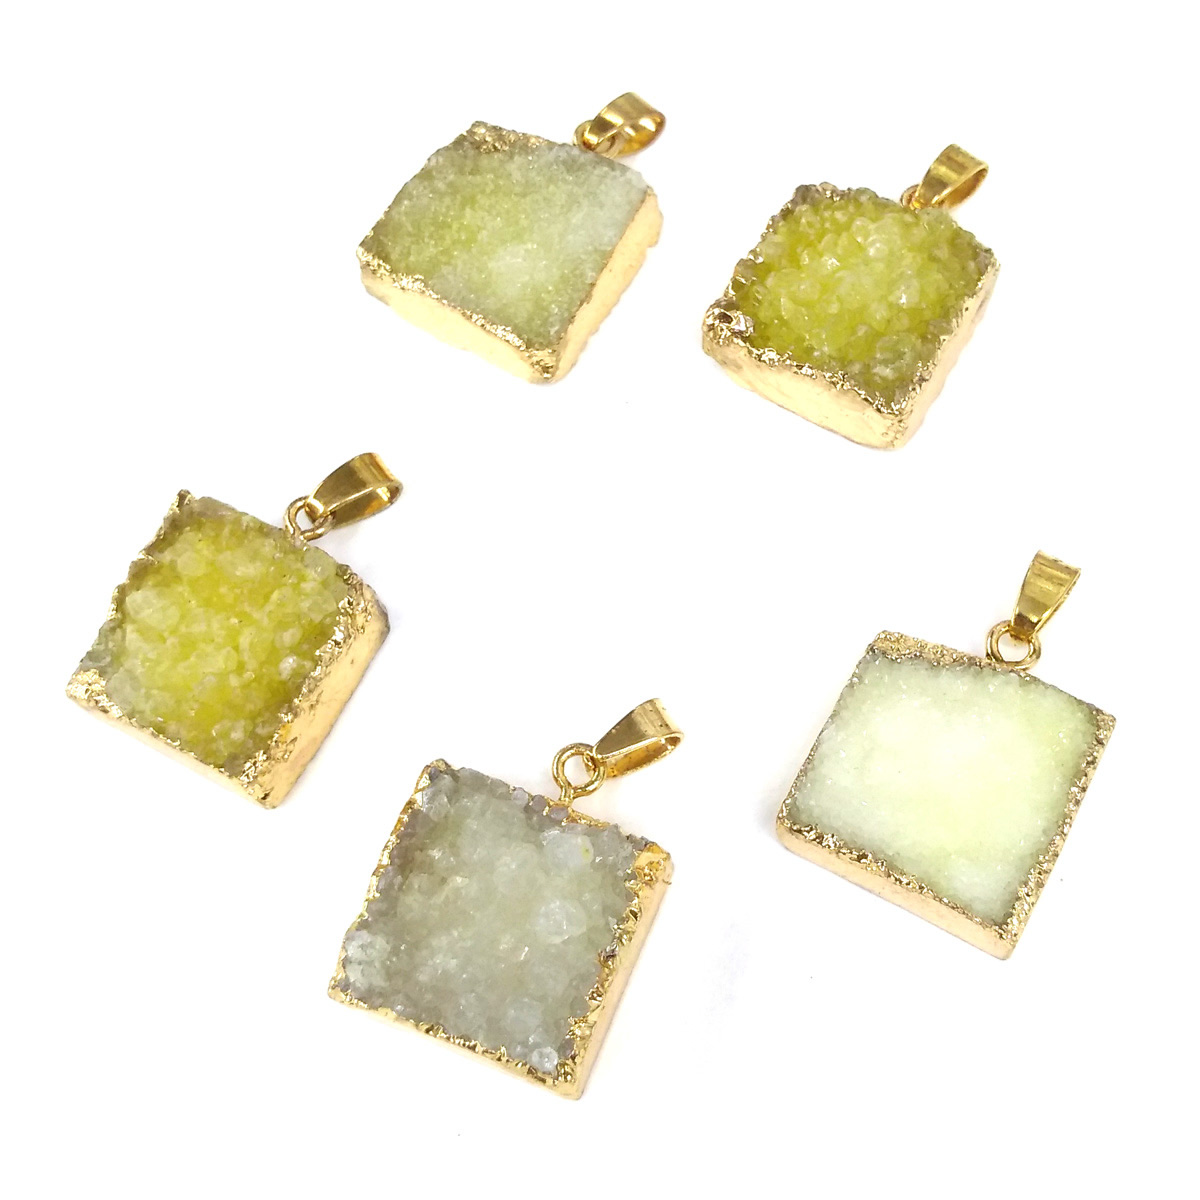 Natural Stone Hot Selling Trendy Agates Pendants Necklace Pendant for Jewelry Making DIY Necklace Size 21x31mm